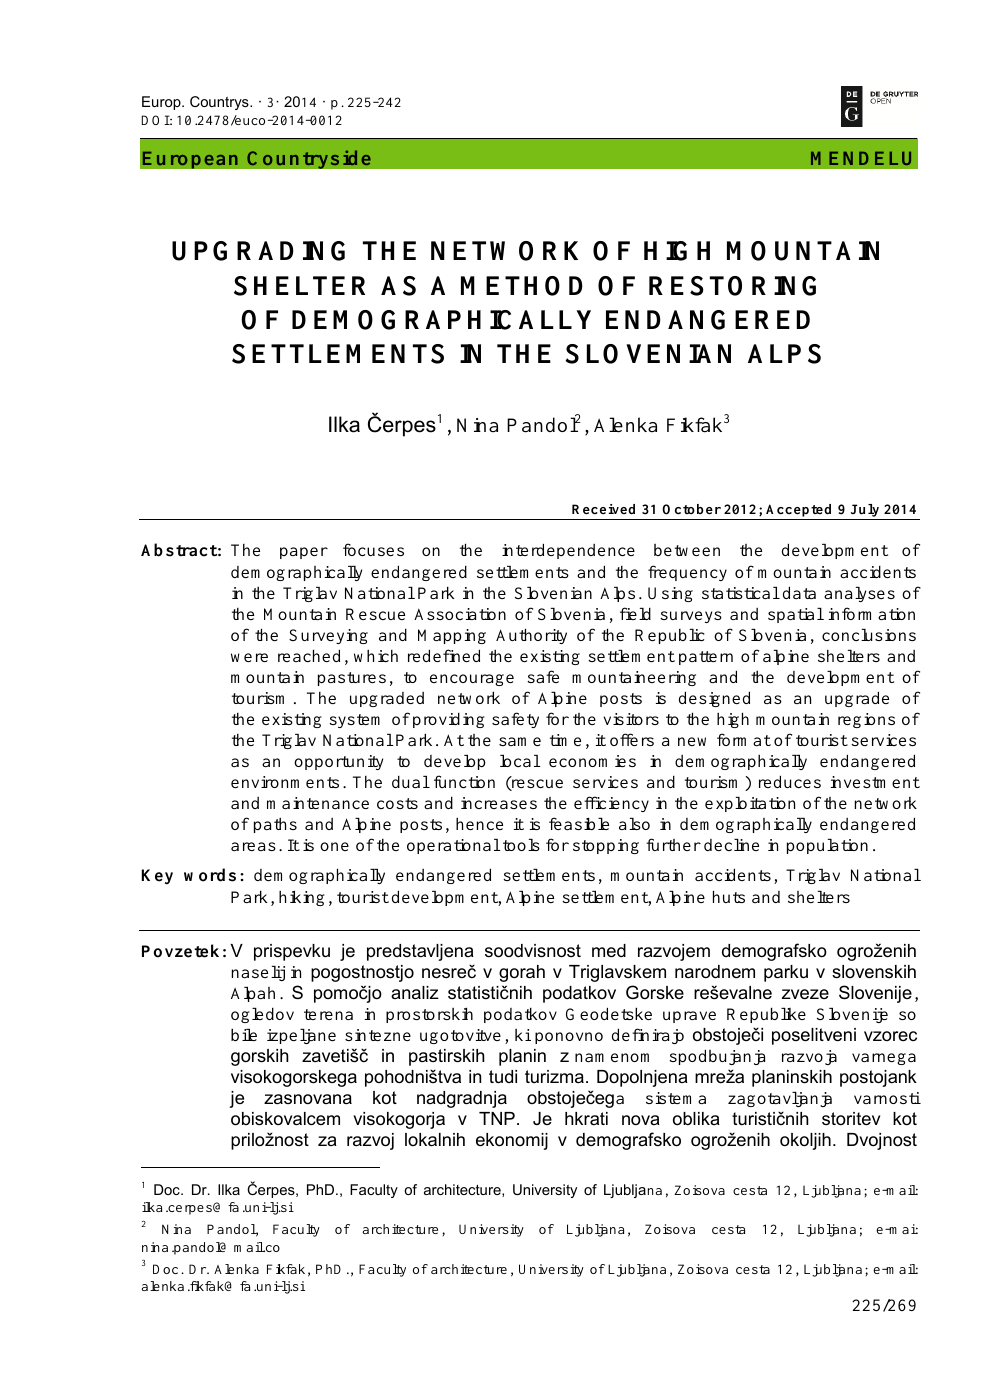 Upgrading the Network of High Mountain Shelter as A Method of